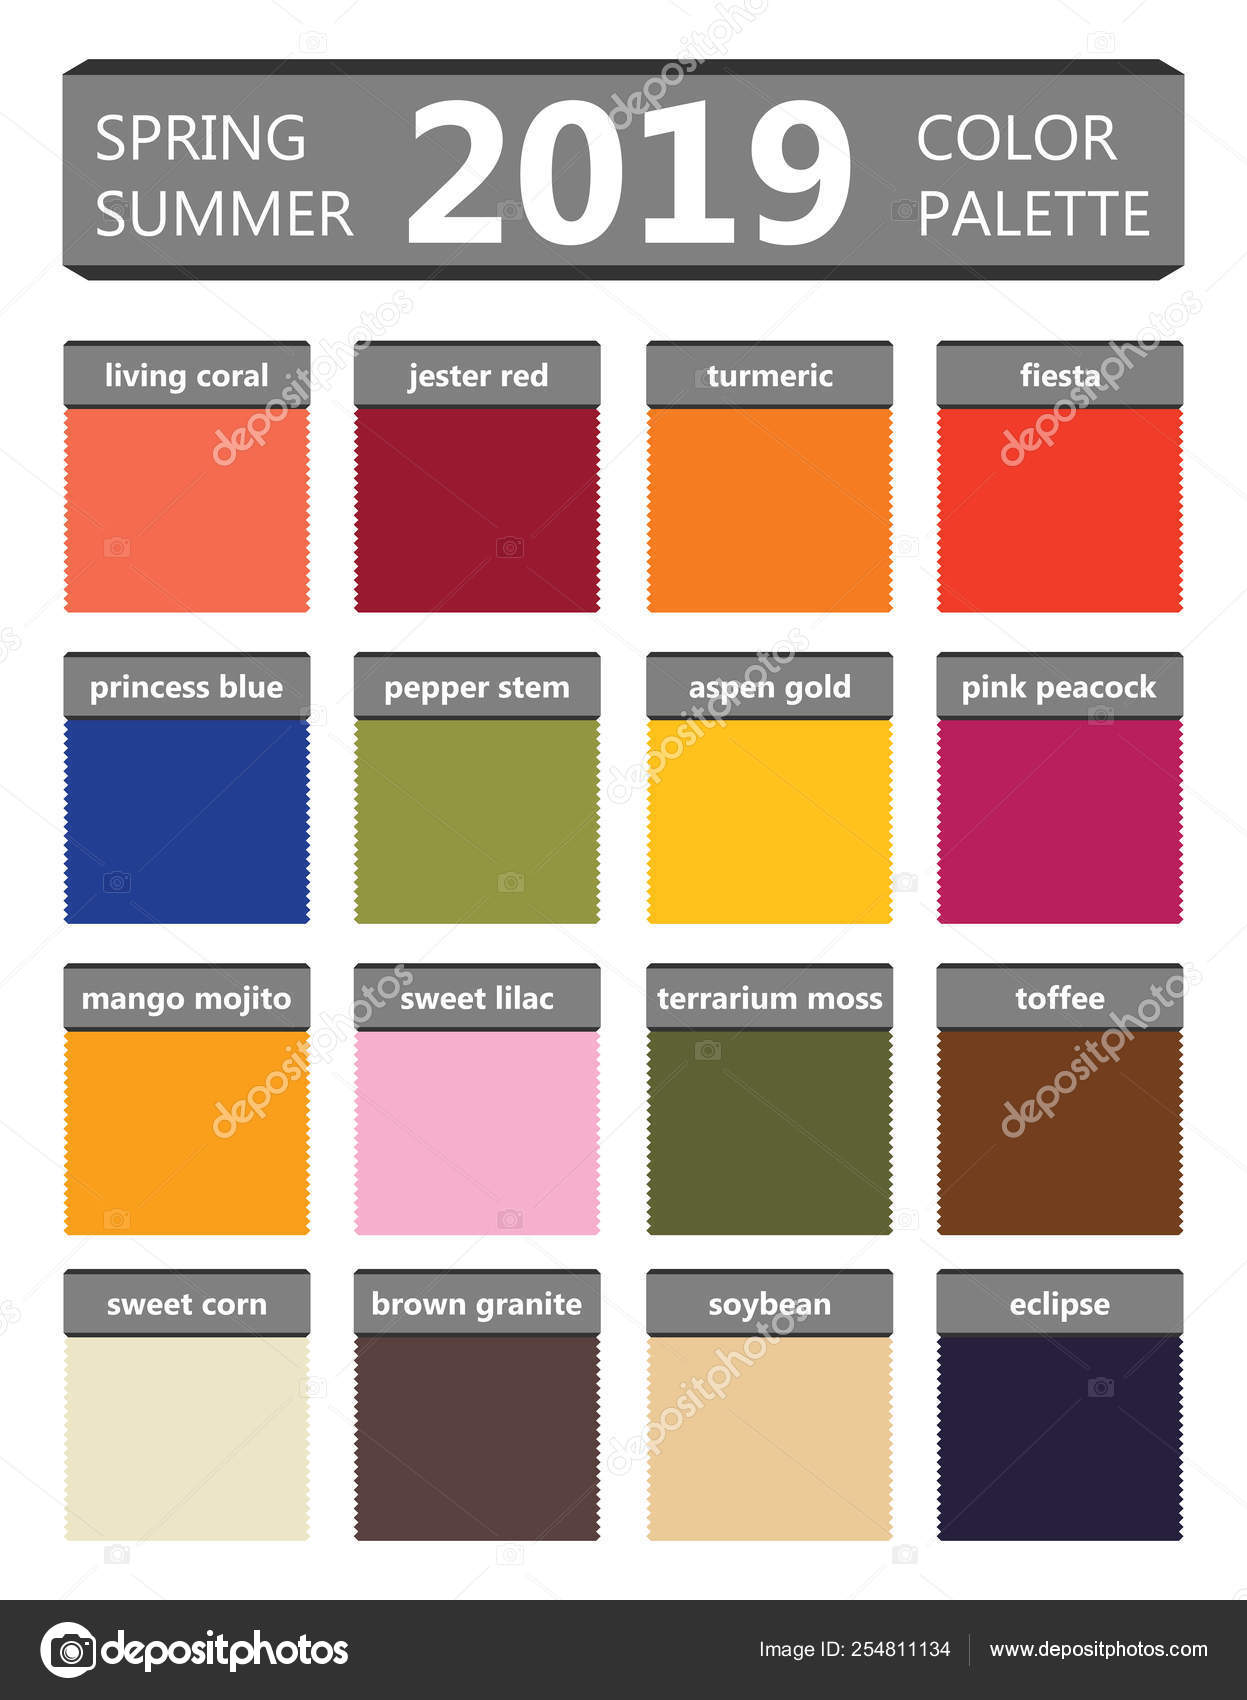 Spring And Summer 2019 Colors Palette Fashion Trend Guide Palette